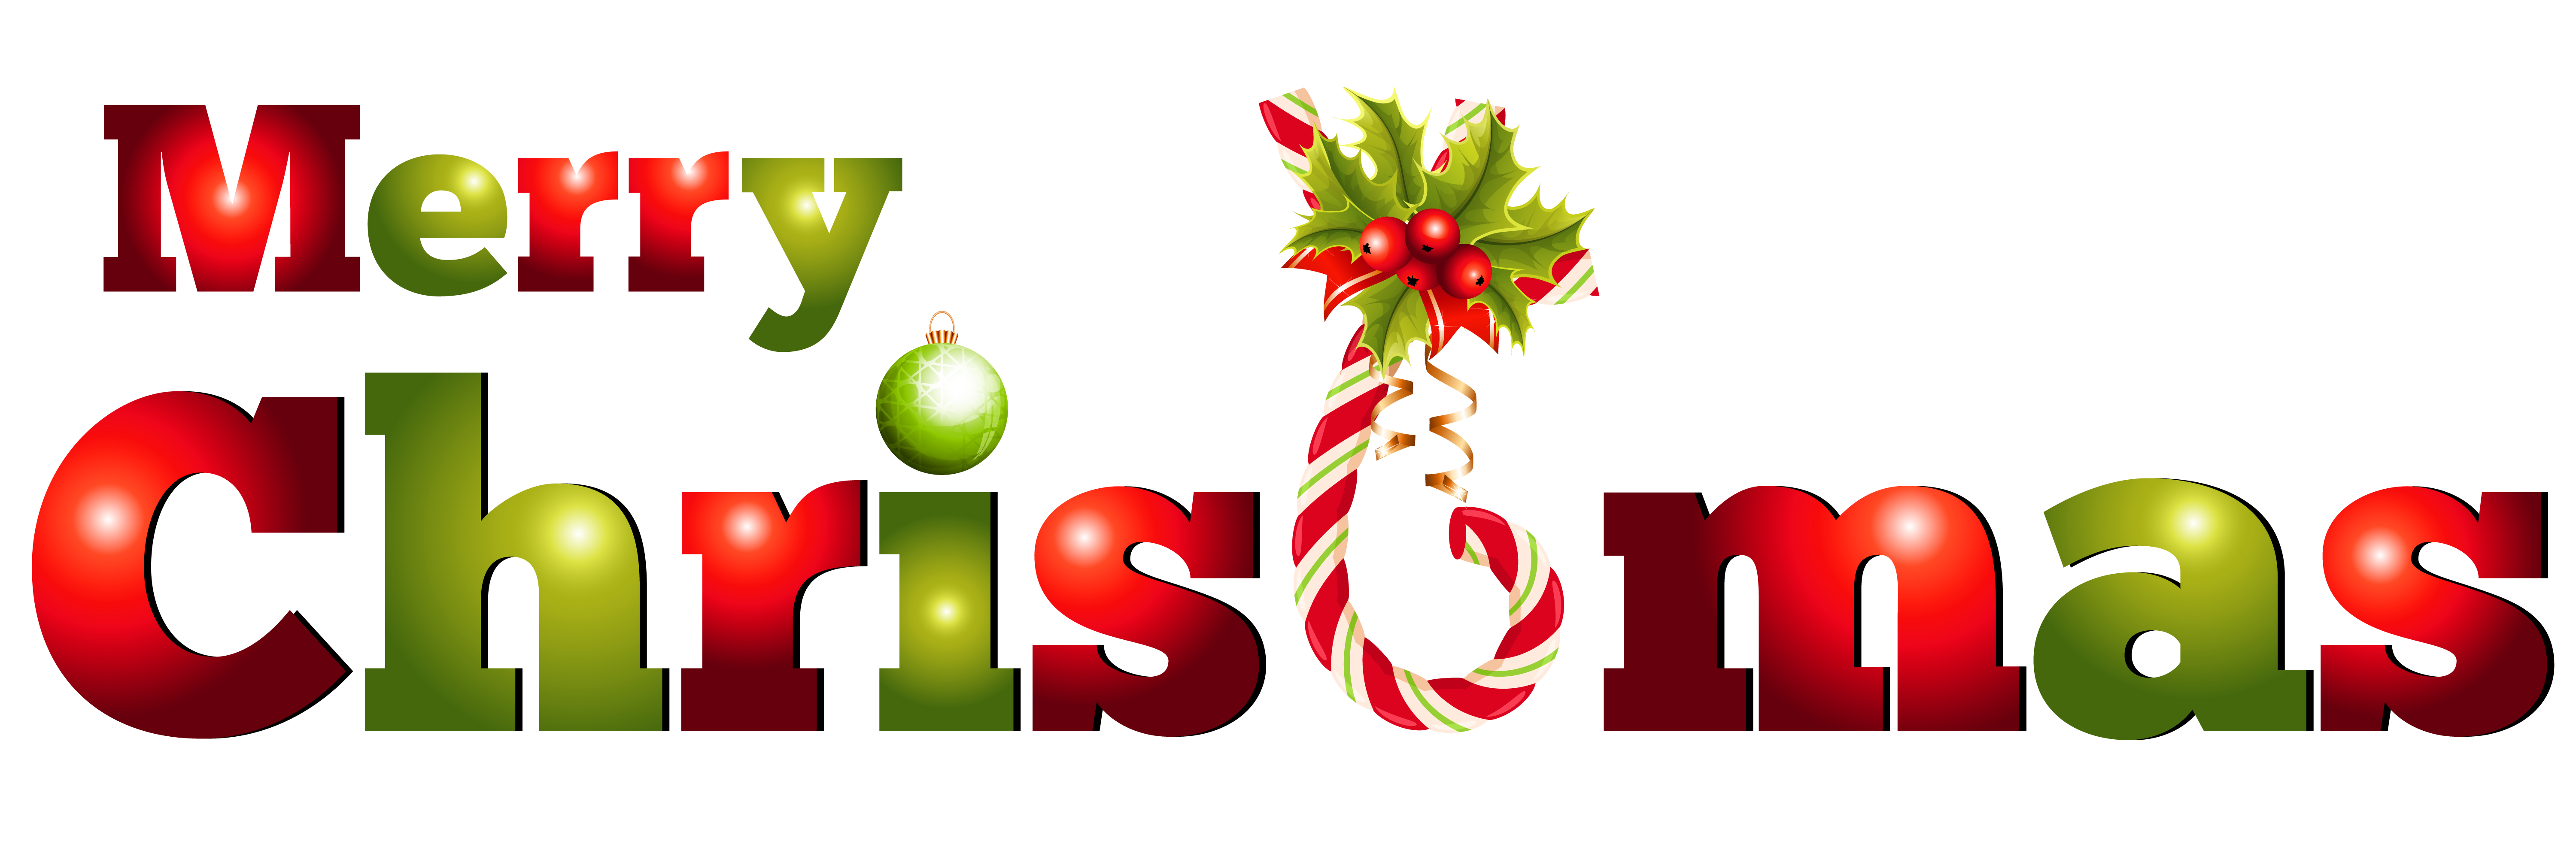 Merry Christmas Text PNG Transparent Images | PNG All | Christmas ...